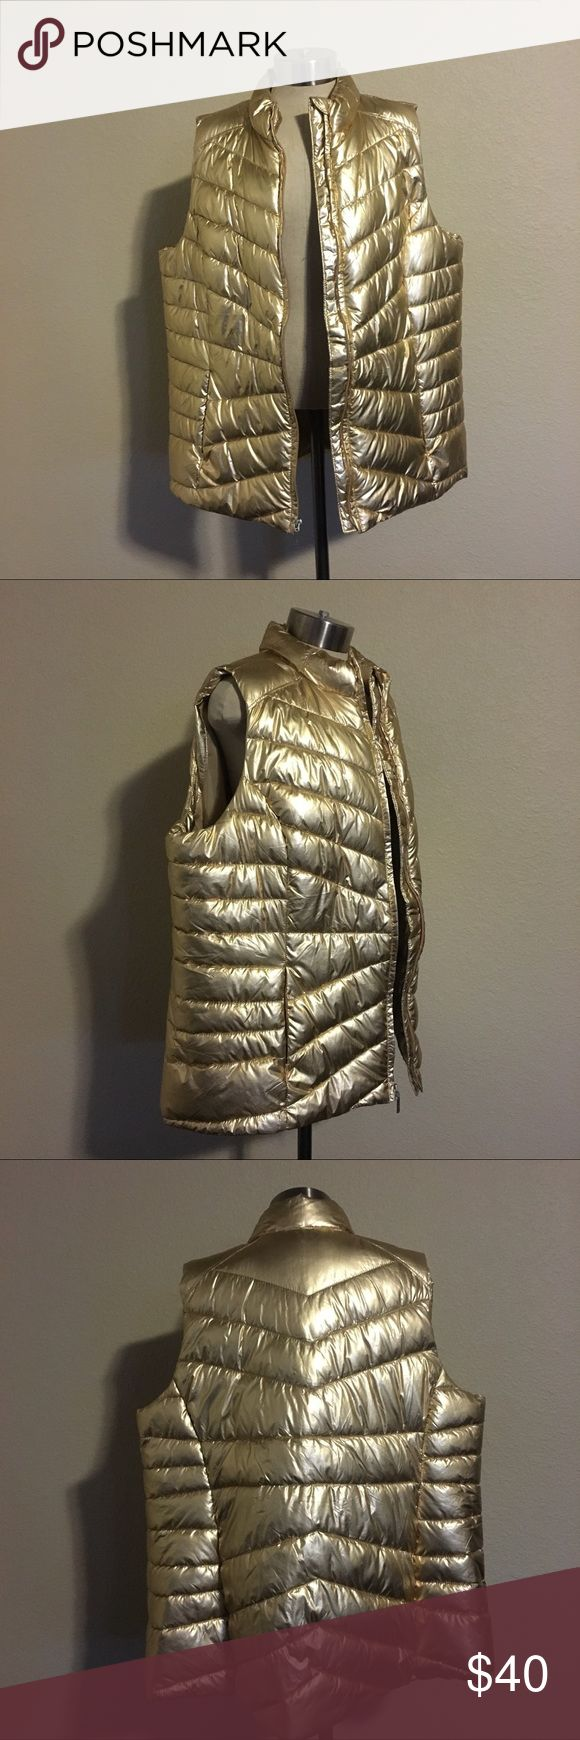 """Layne Brant Livi Active metallic vest Flat lay measurements bust 26"""", length 30"""" front, 32"""" back. NWT. Gorgeous metallic vest in a gold hue! Pair it with a long sleeve and your favorite leggings for a glam look while you run errands, the options are endless! Lane Bryant Jackets & Coats Vests"""